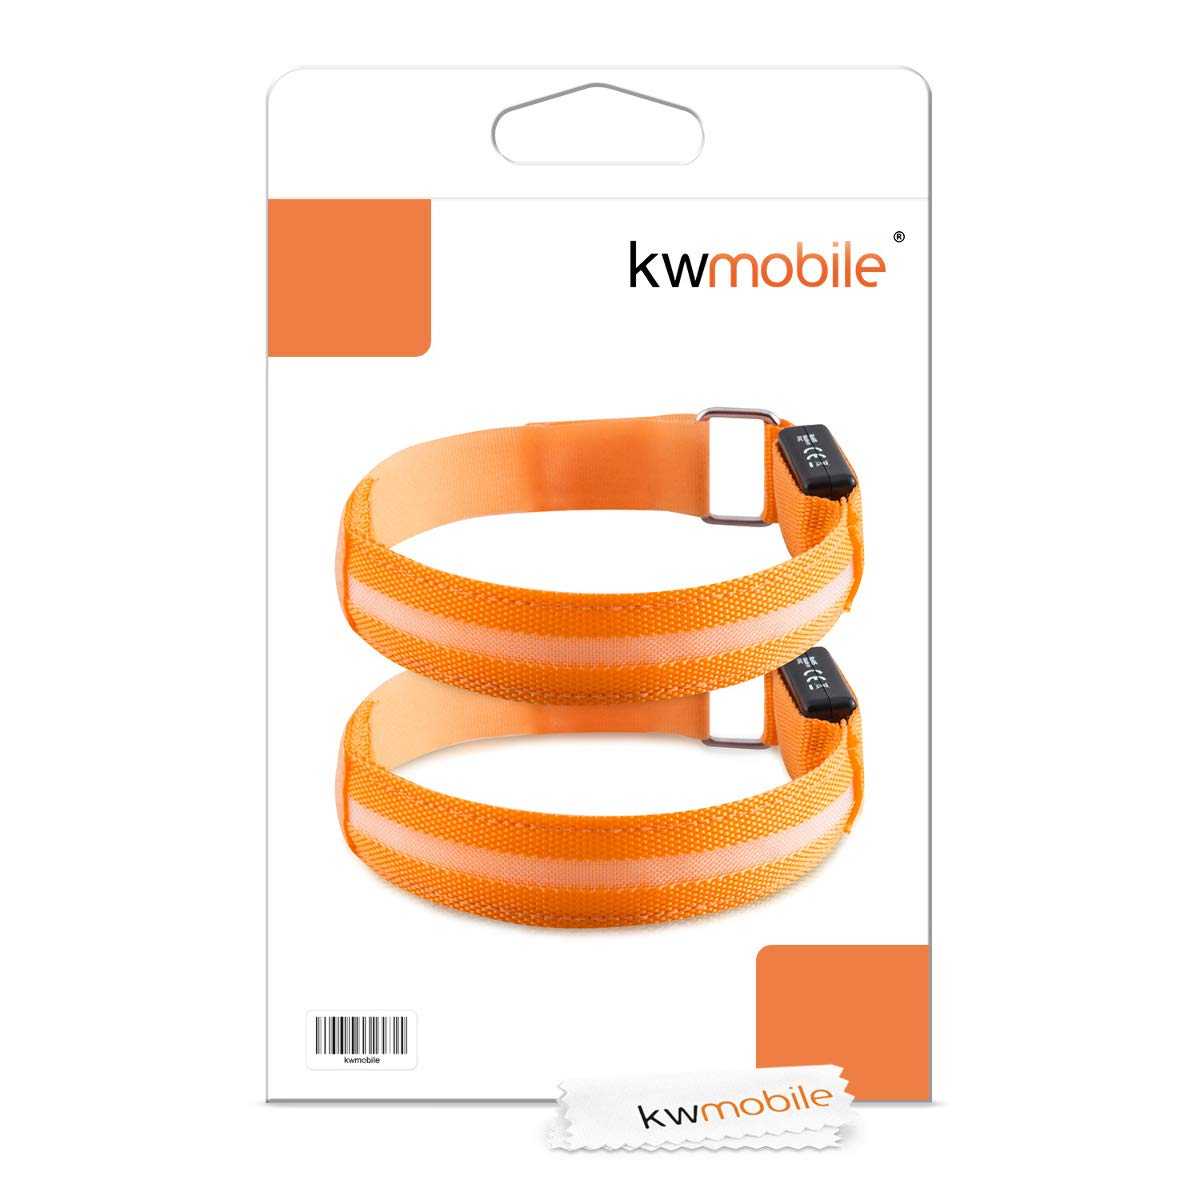 Leg Glow in the Dark Safety Bracelet for Arm kwmobile 2x LED Light Armband Outdoor Sports Bands for Jogging Cycling Walking Ankle